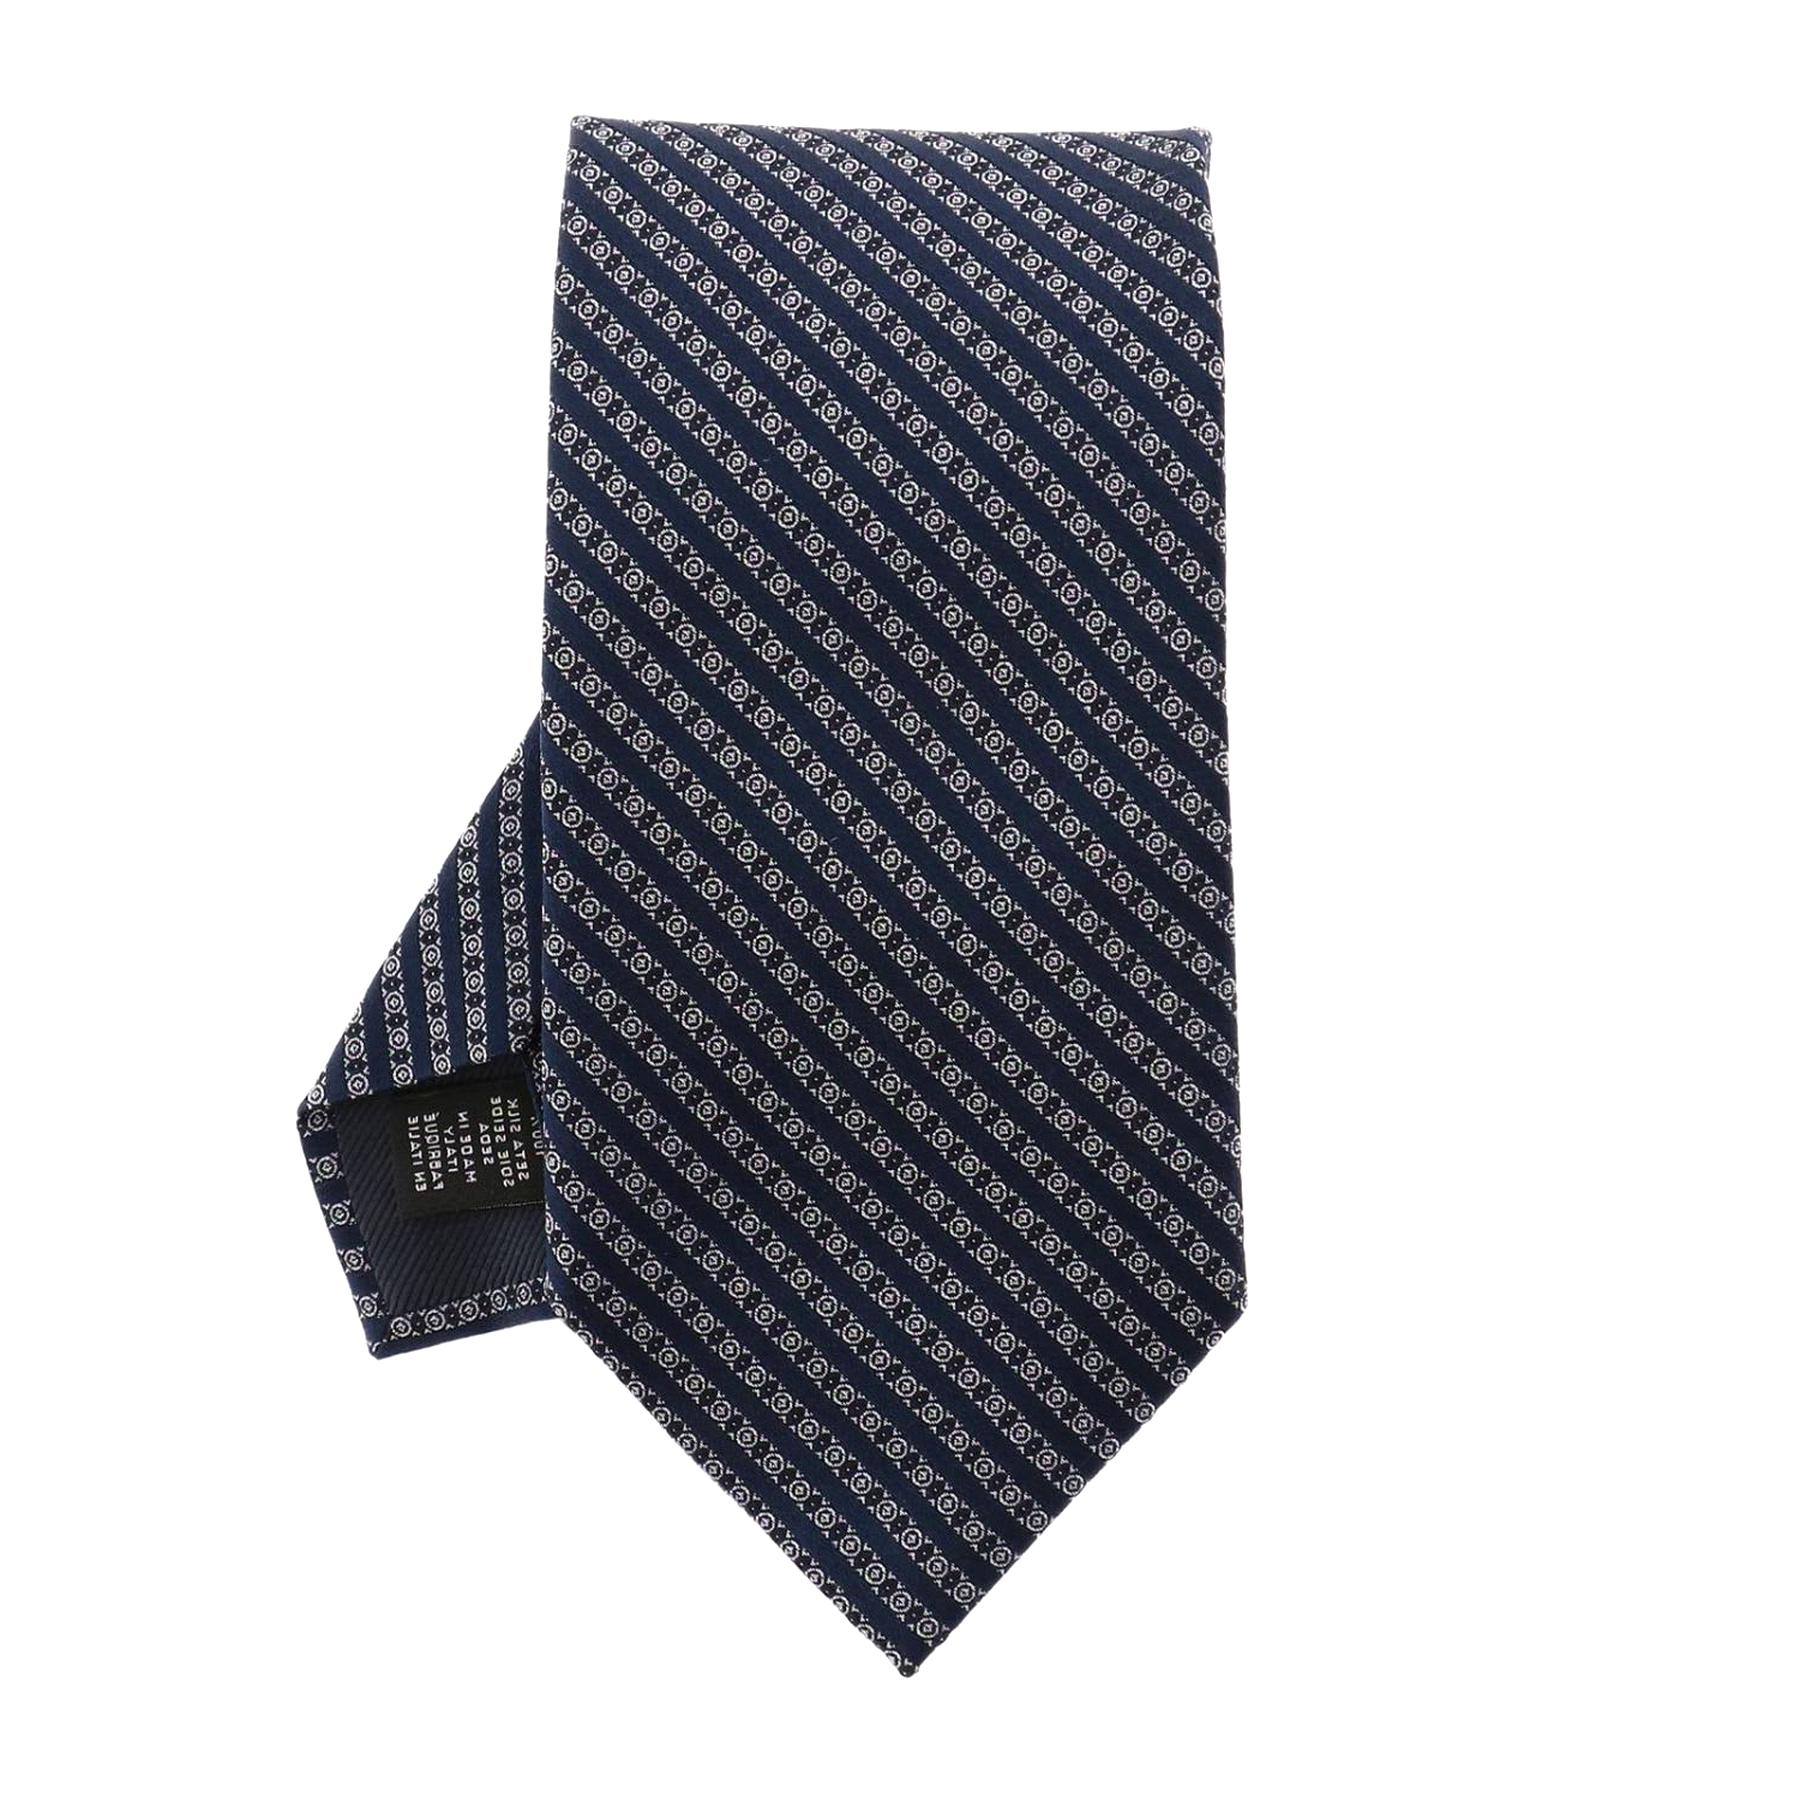 zegna tie for sale